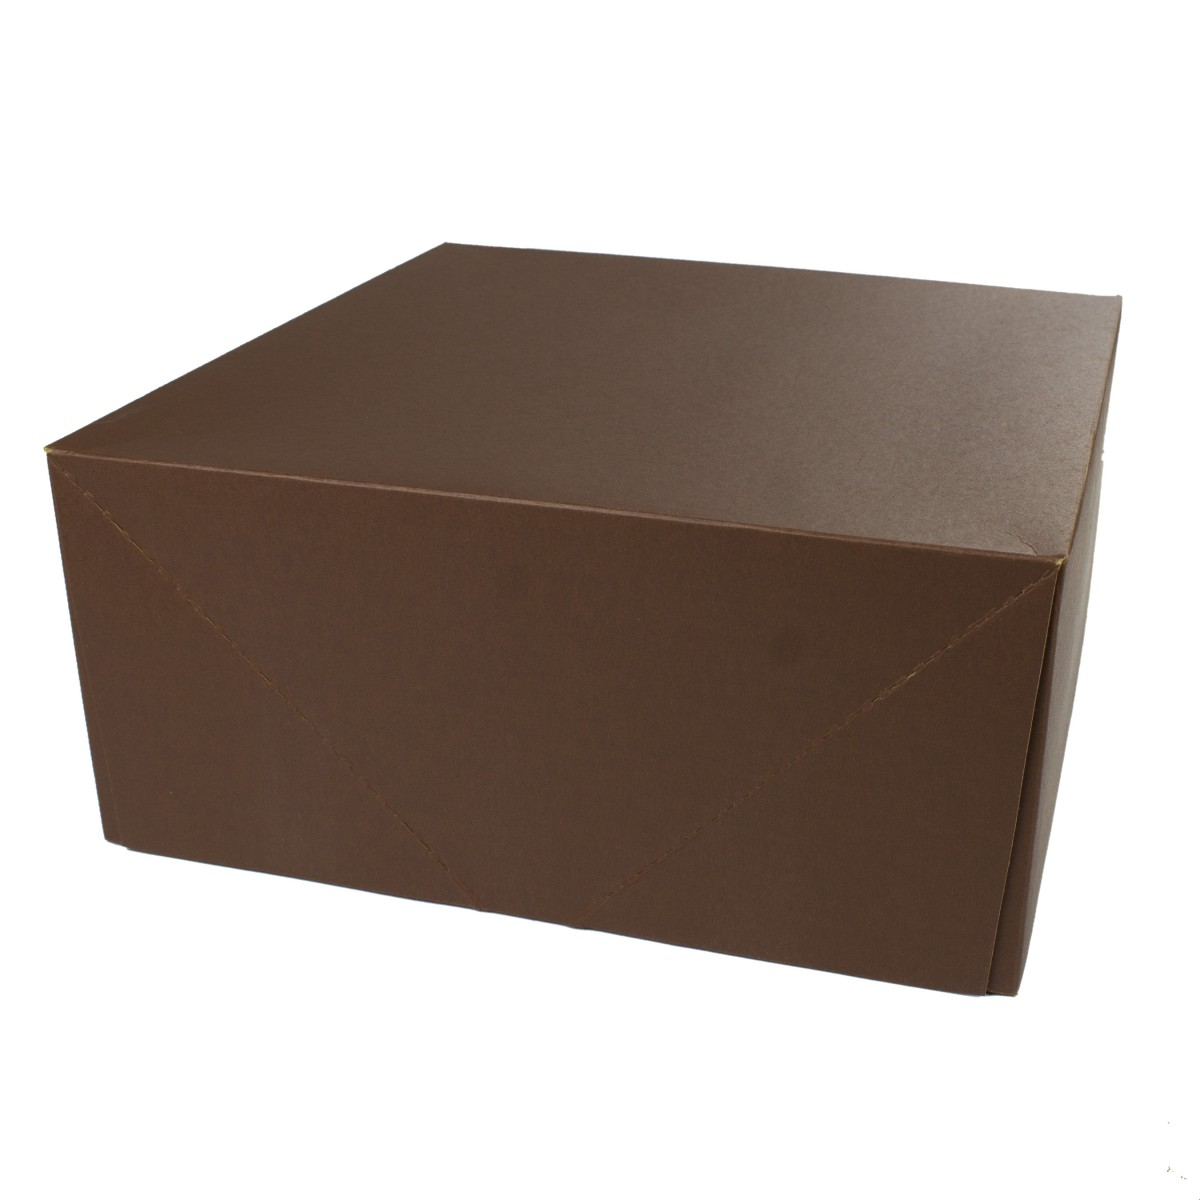 12 x 12 x 5.5 COCOA TINTED TWO-PIECE GIFT BOXES